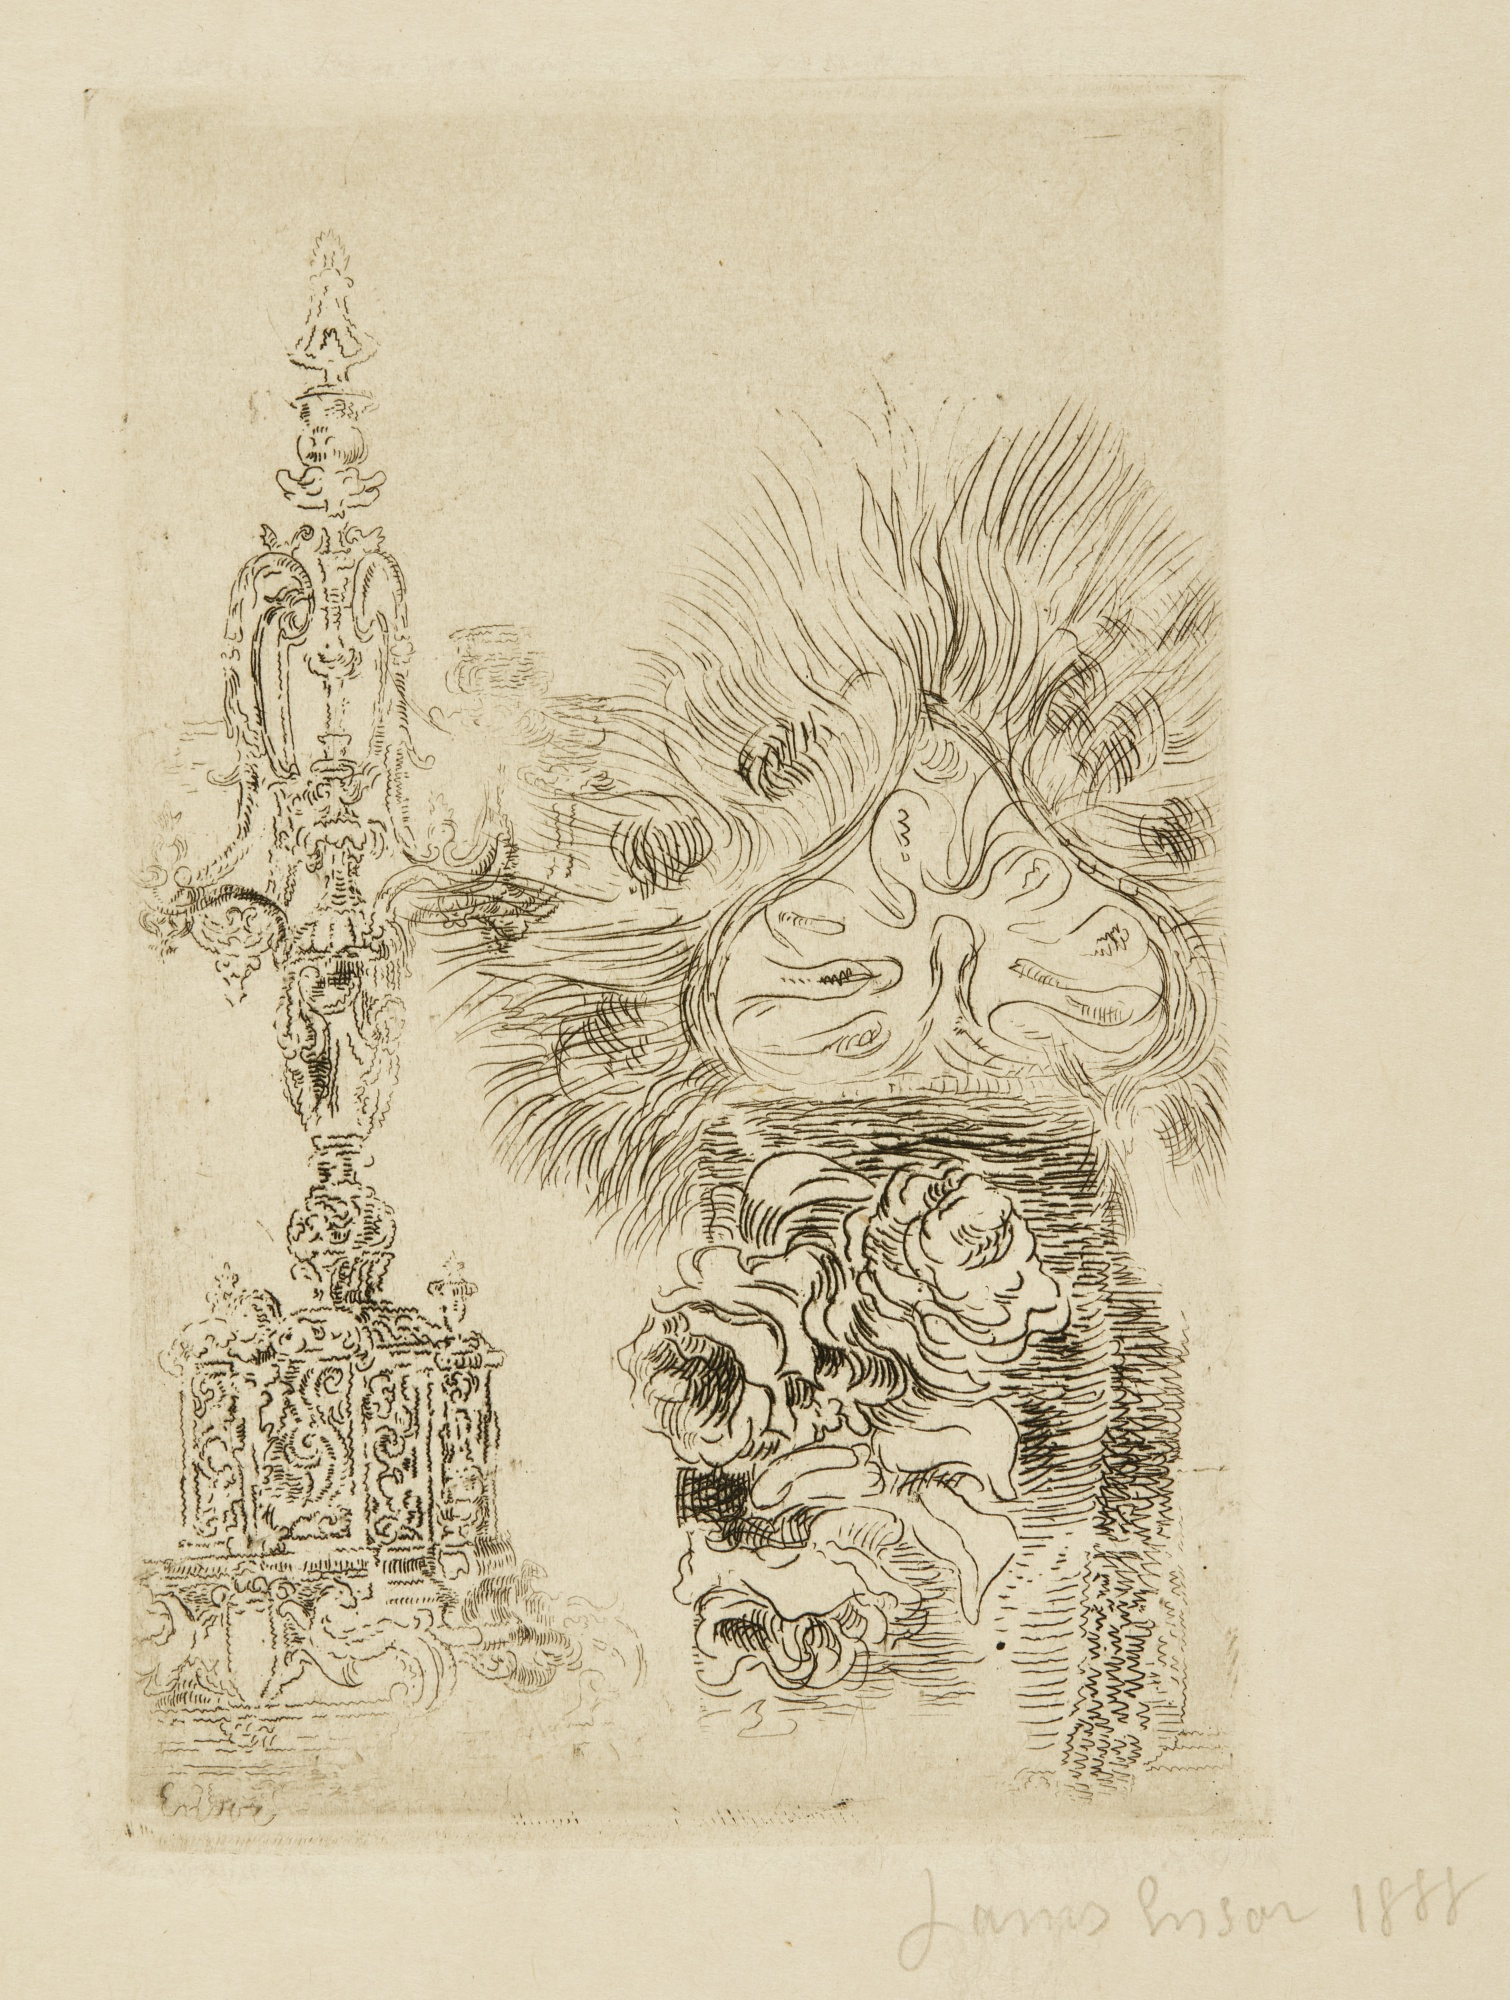 James Ensor-Buste; La ChimÈRe; And CandÉLabre Et Vase (D. T. E. 18 25 31)-1888